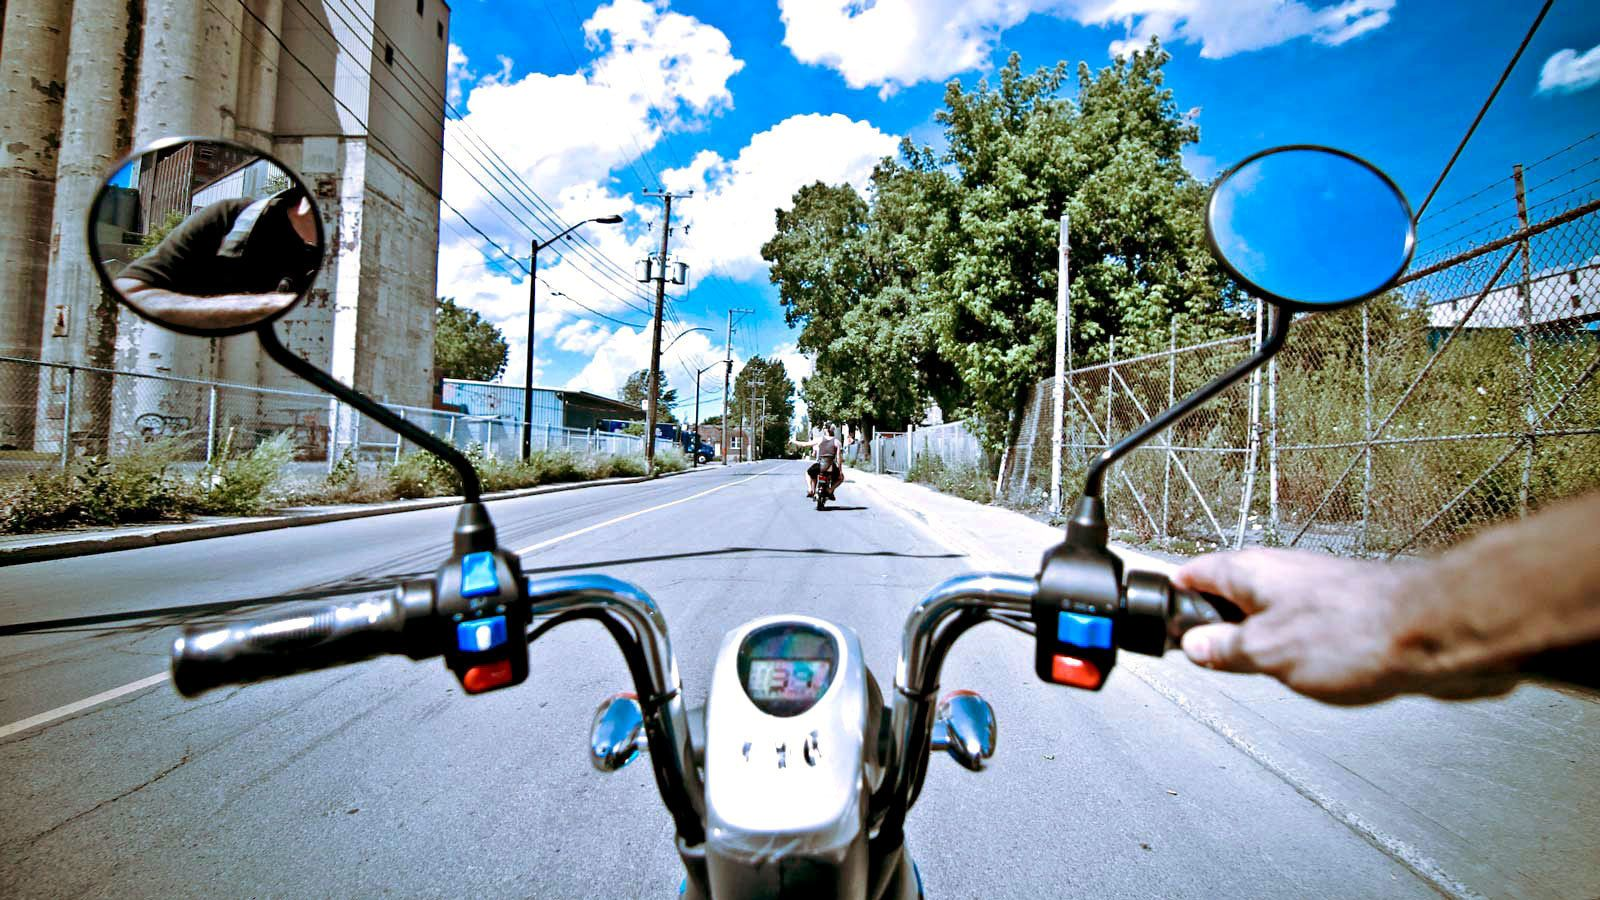 Electric Scooter Tour of Plateau, Mile End & Old Montreal